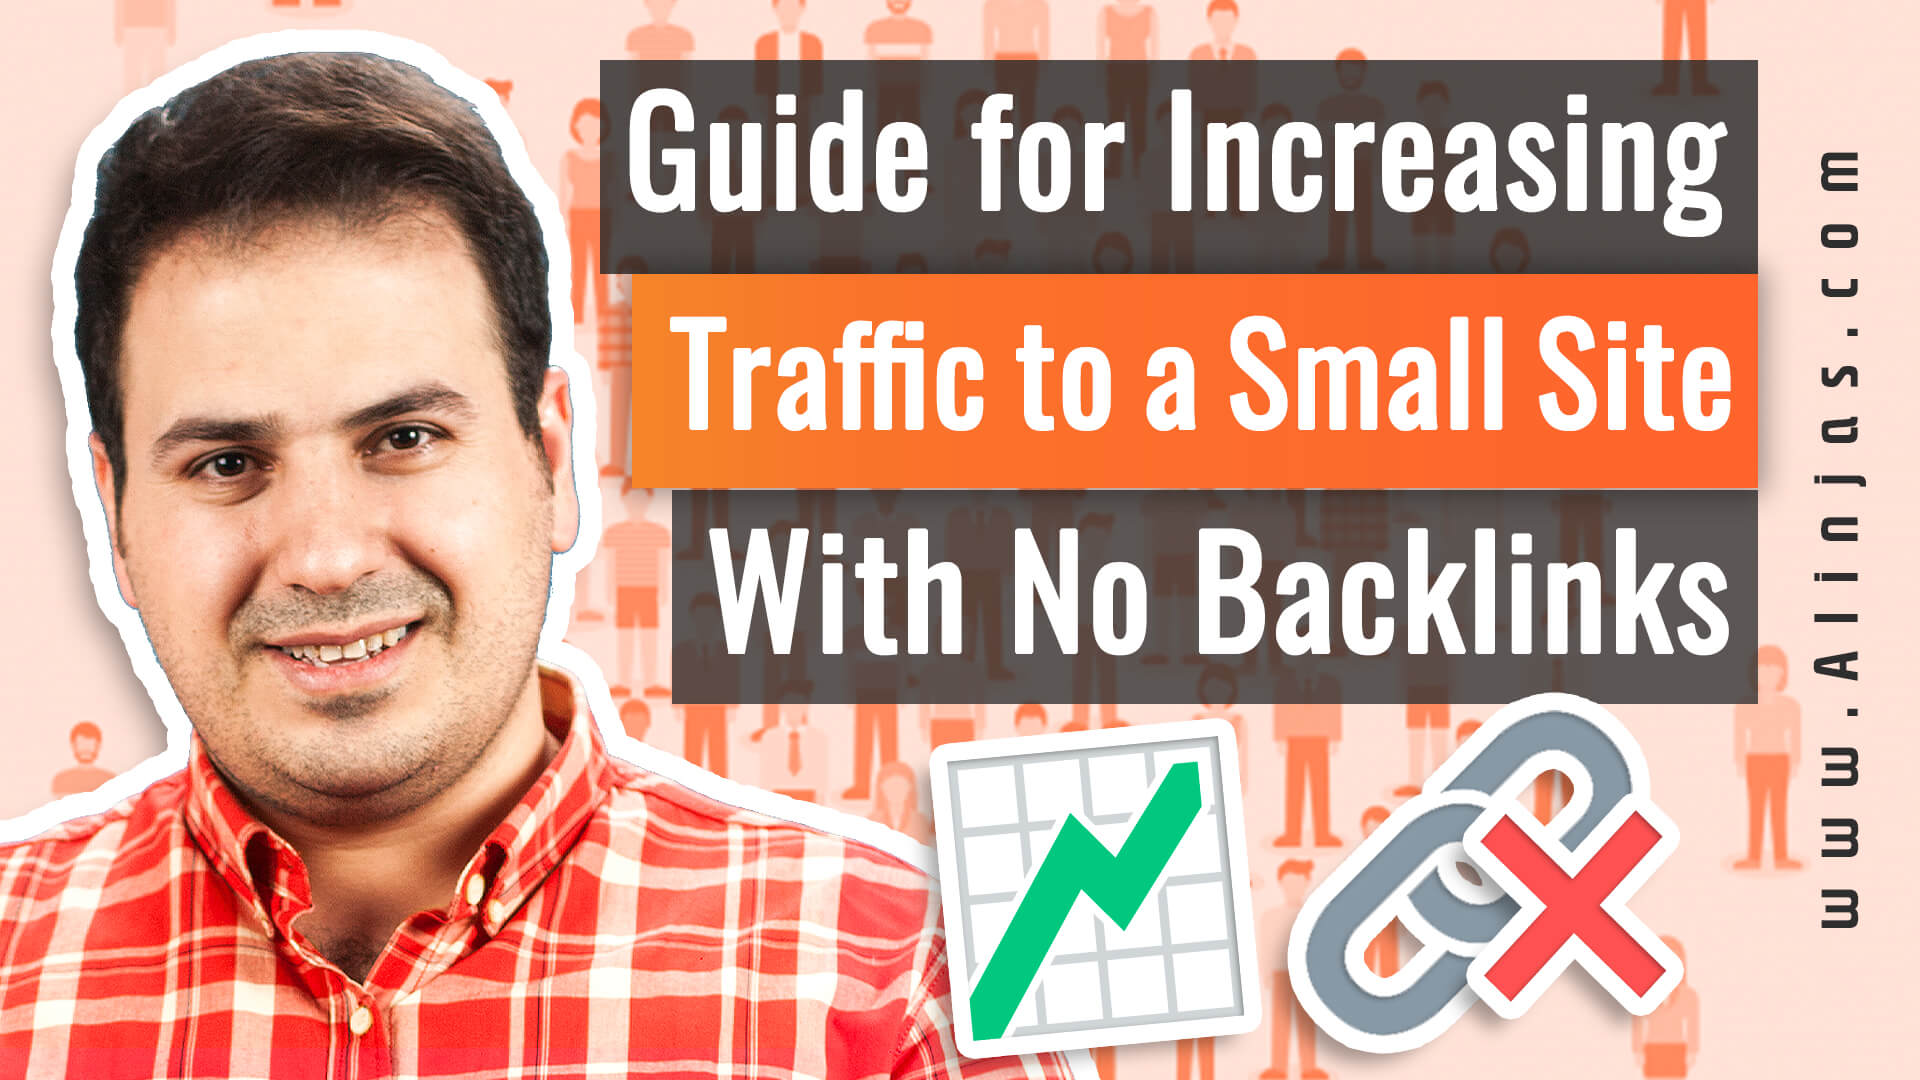 Ali AlAbbas - Guide for Increasing Traffic to A Small Site With No Backlinks